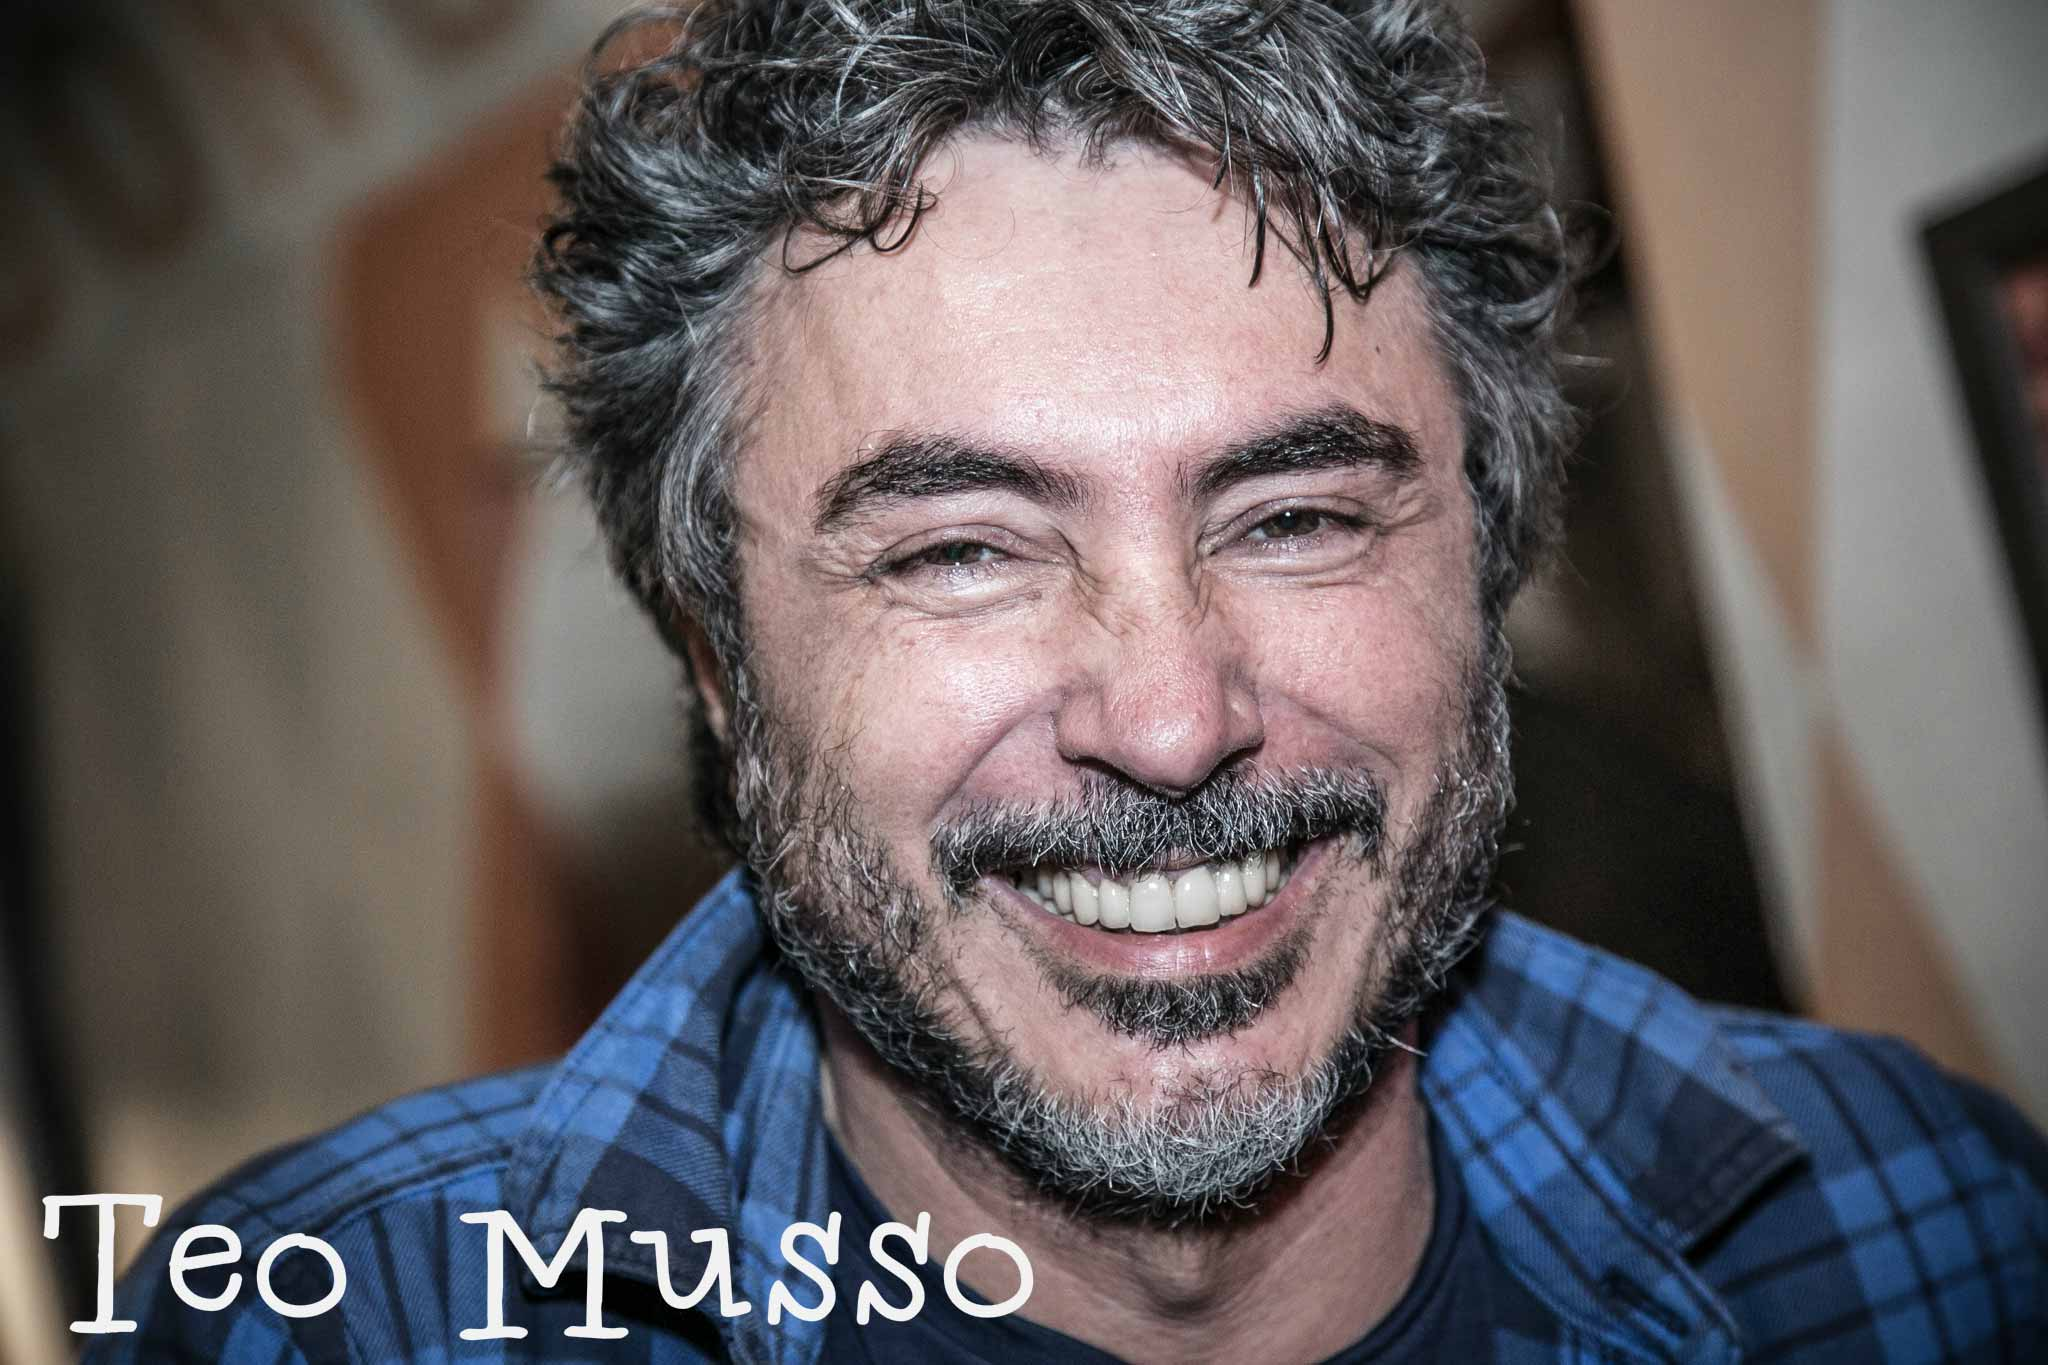 Teo Musso